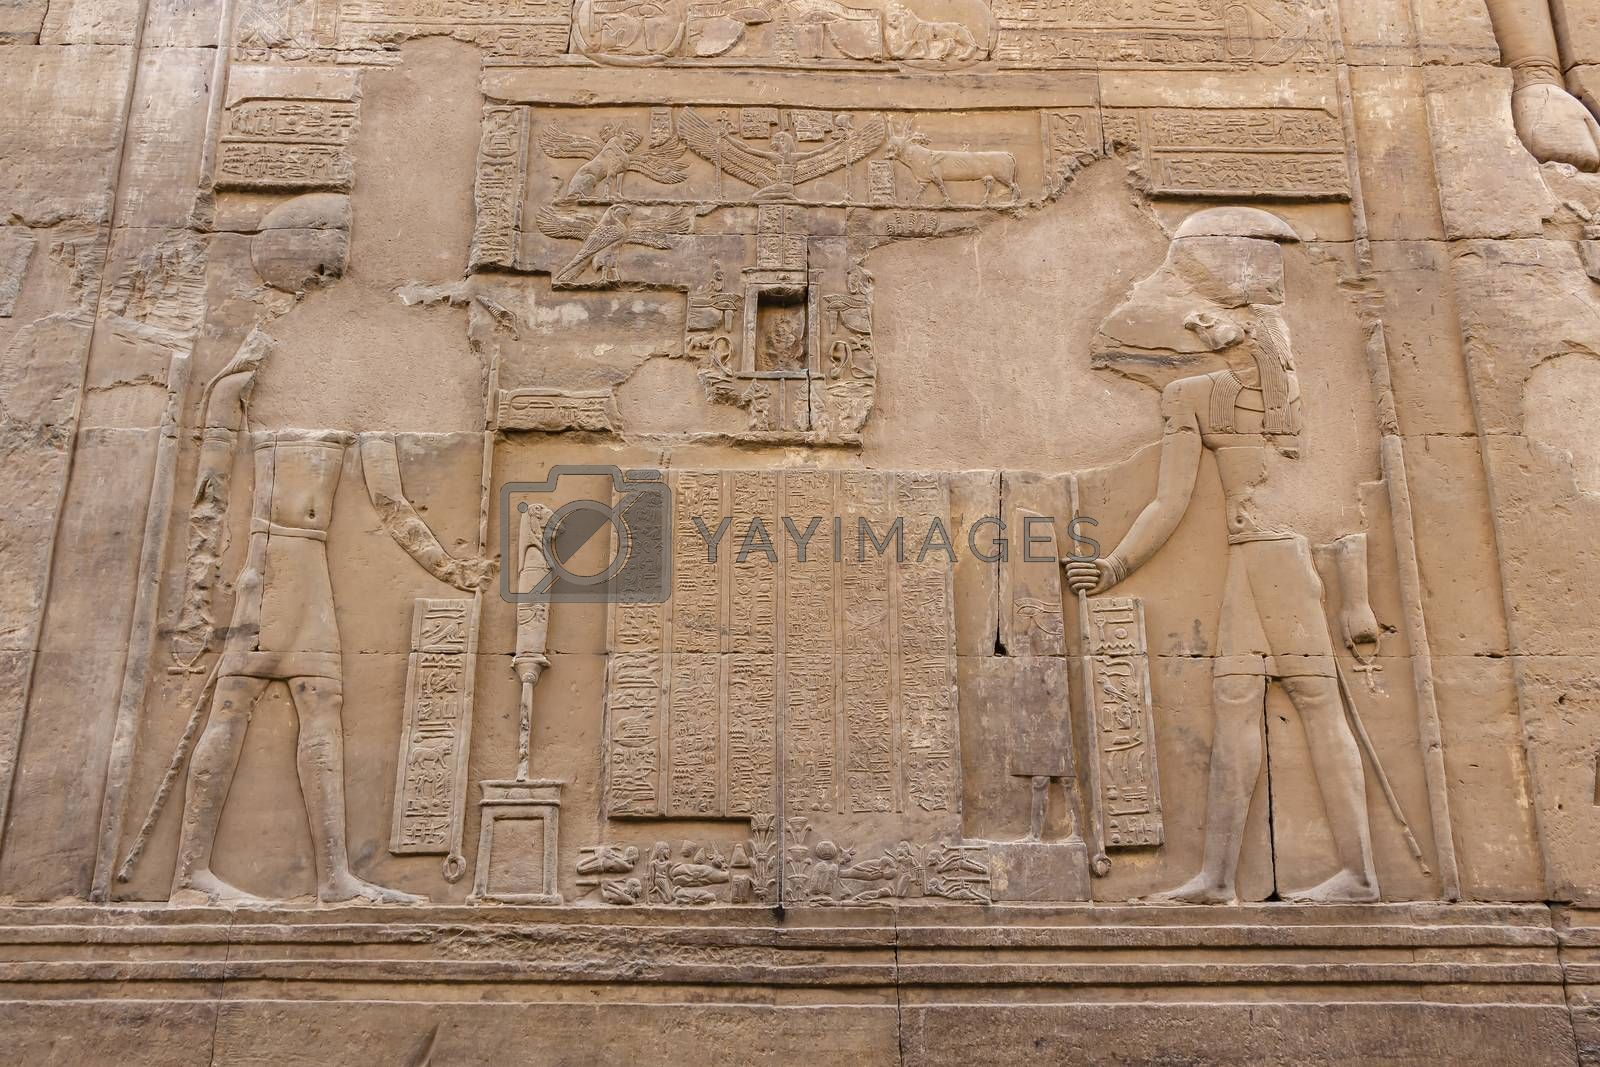 The Egyptian falcon god Horus and Sobek detail on the wall in the Temple of Kom Ombo, Aswan